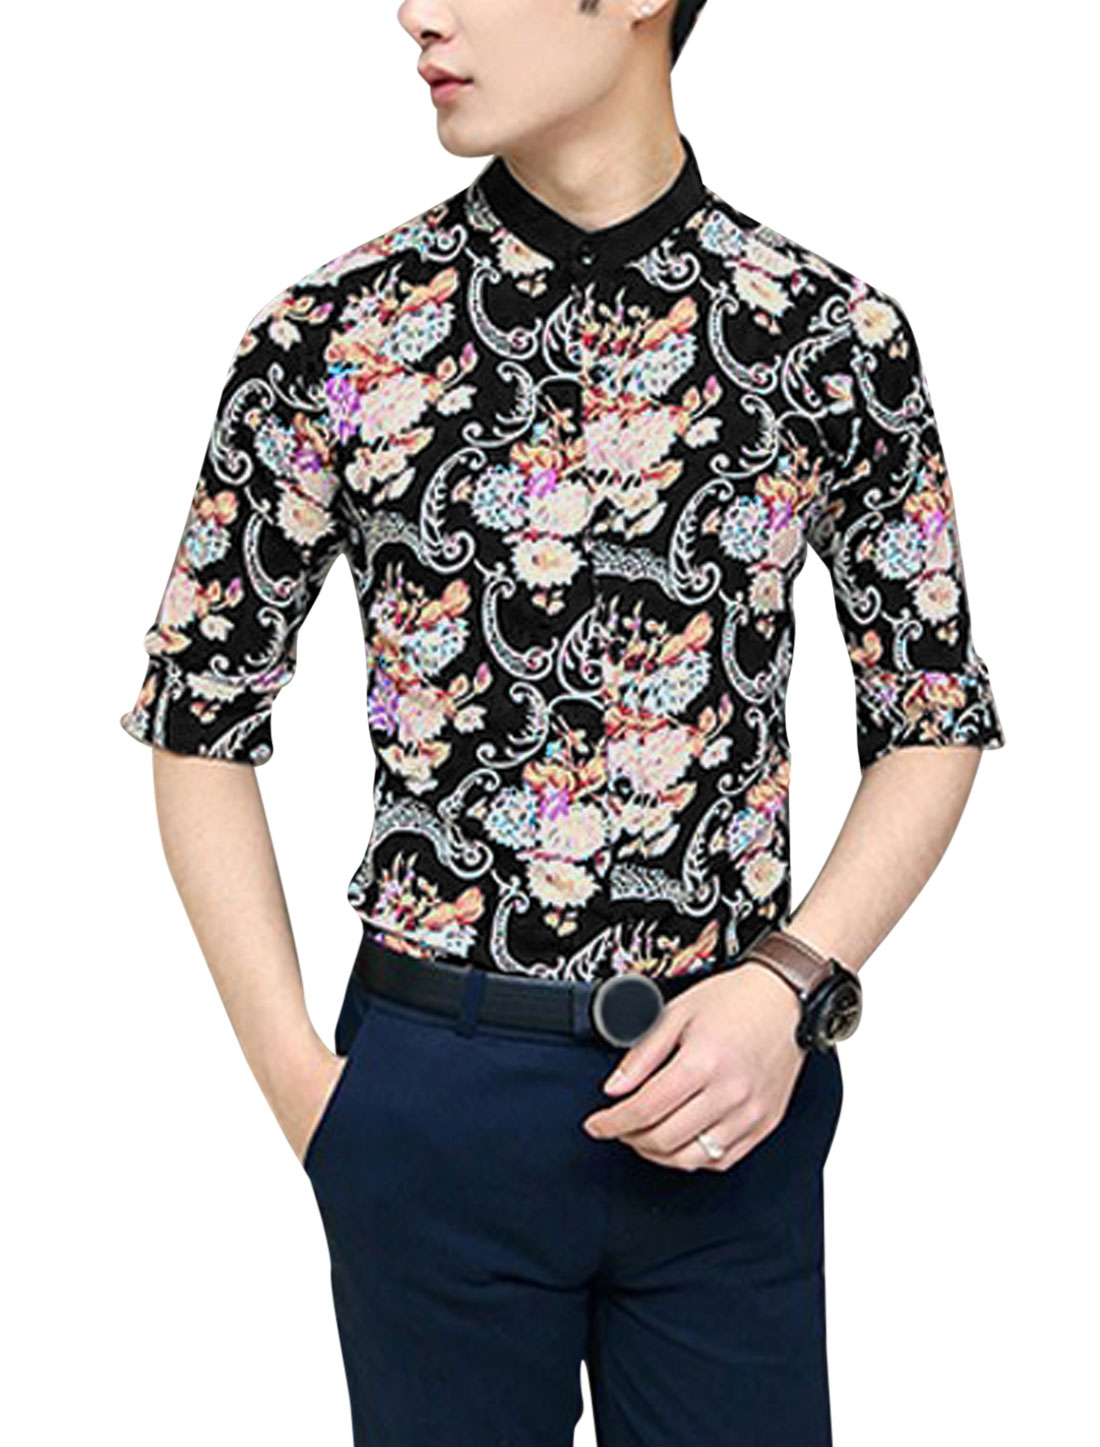 Men Chic Floral Prints Half Sleeve Leisure Top Shirt Black M